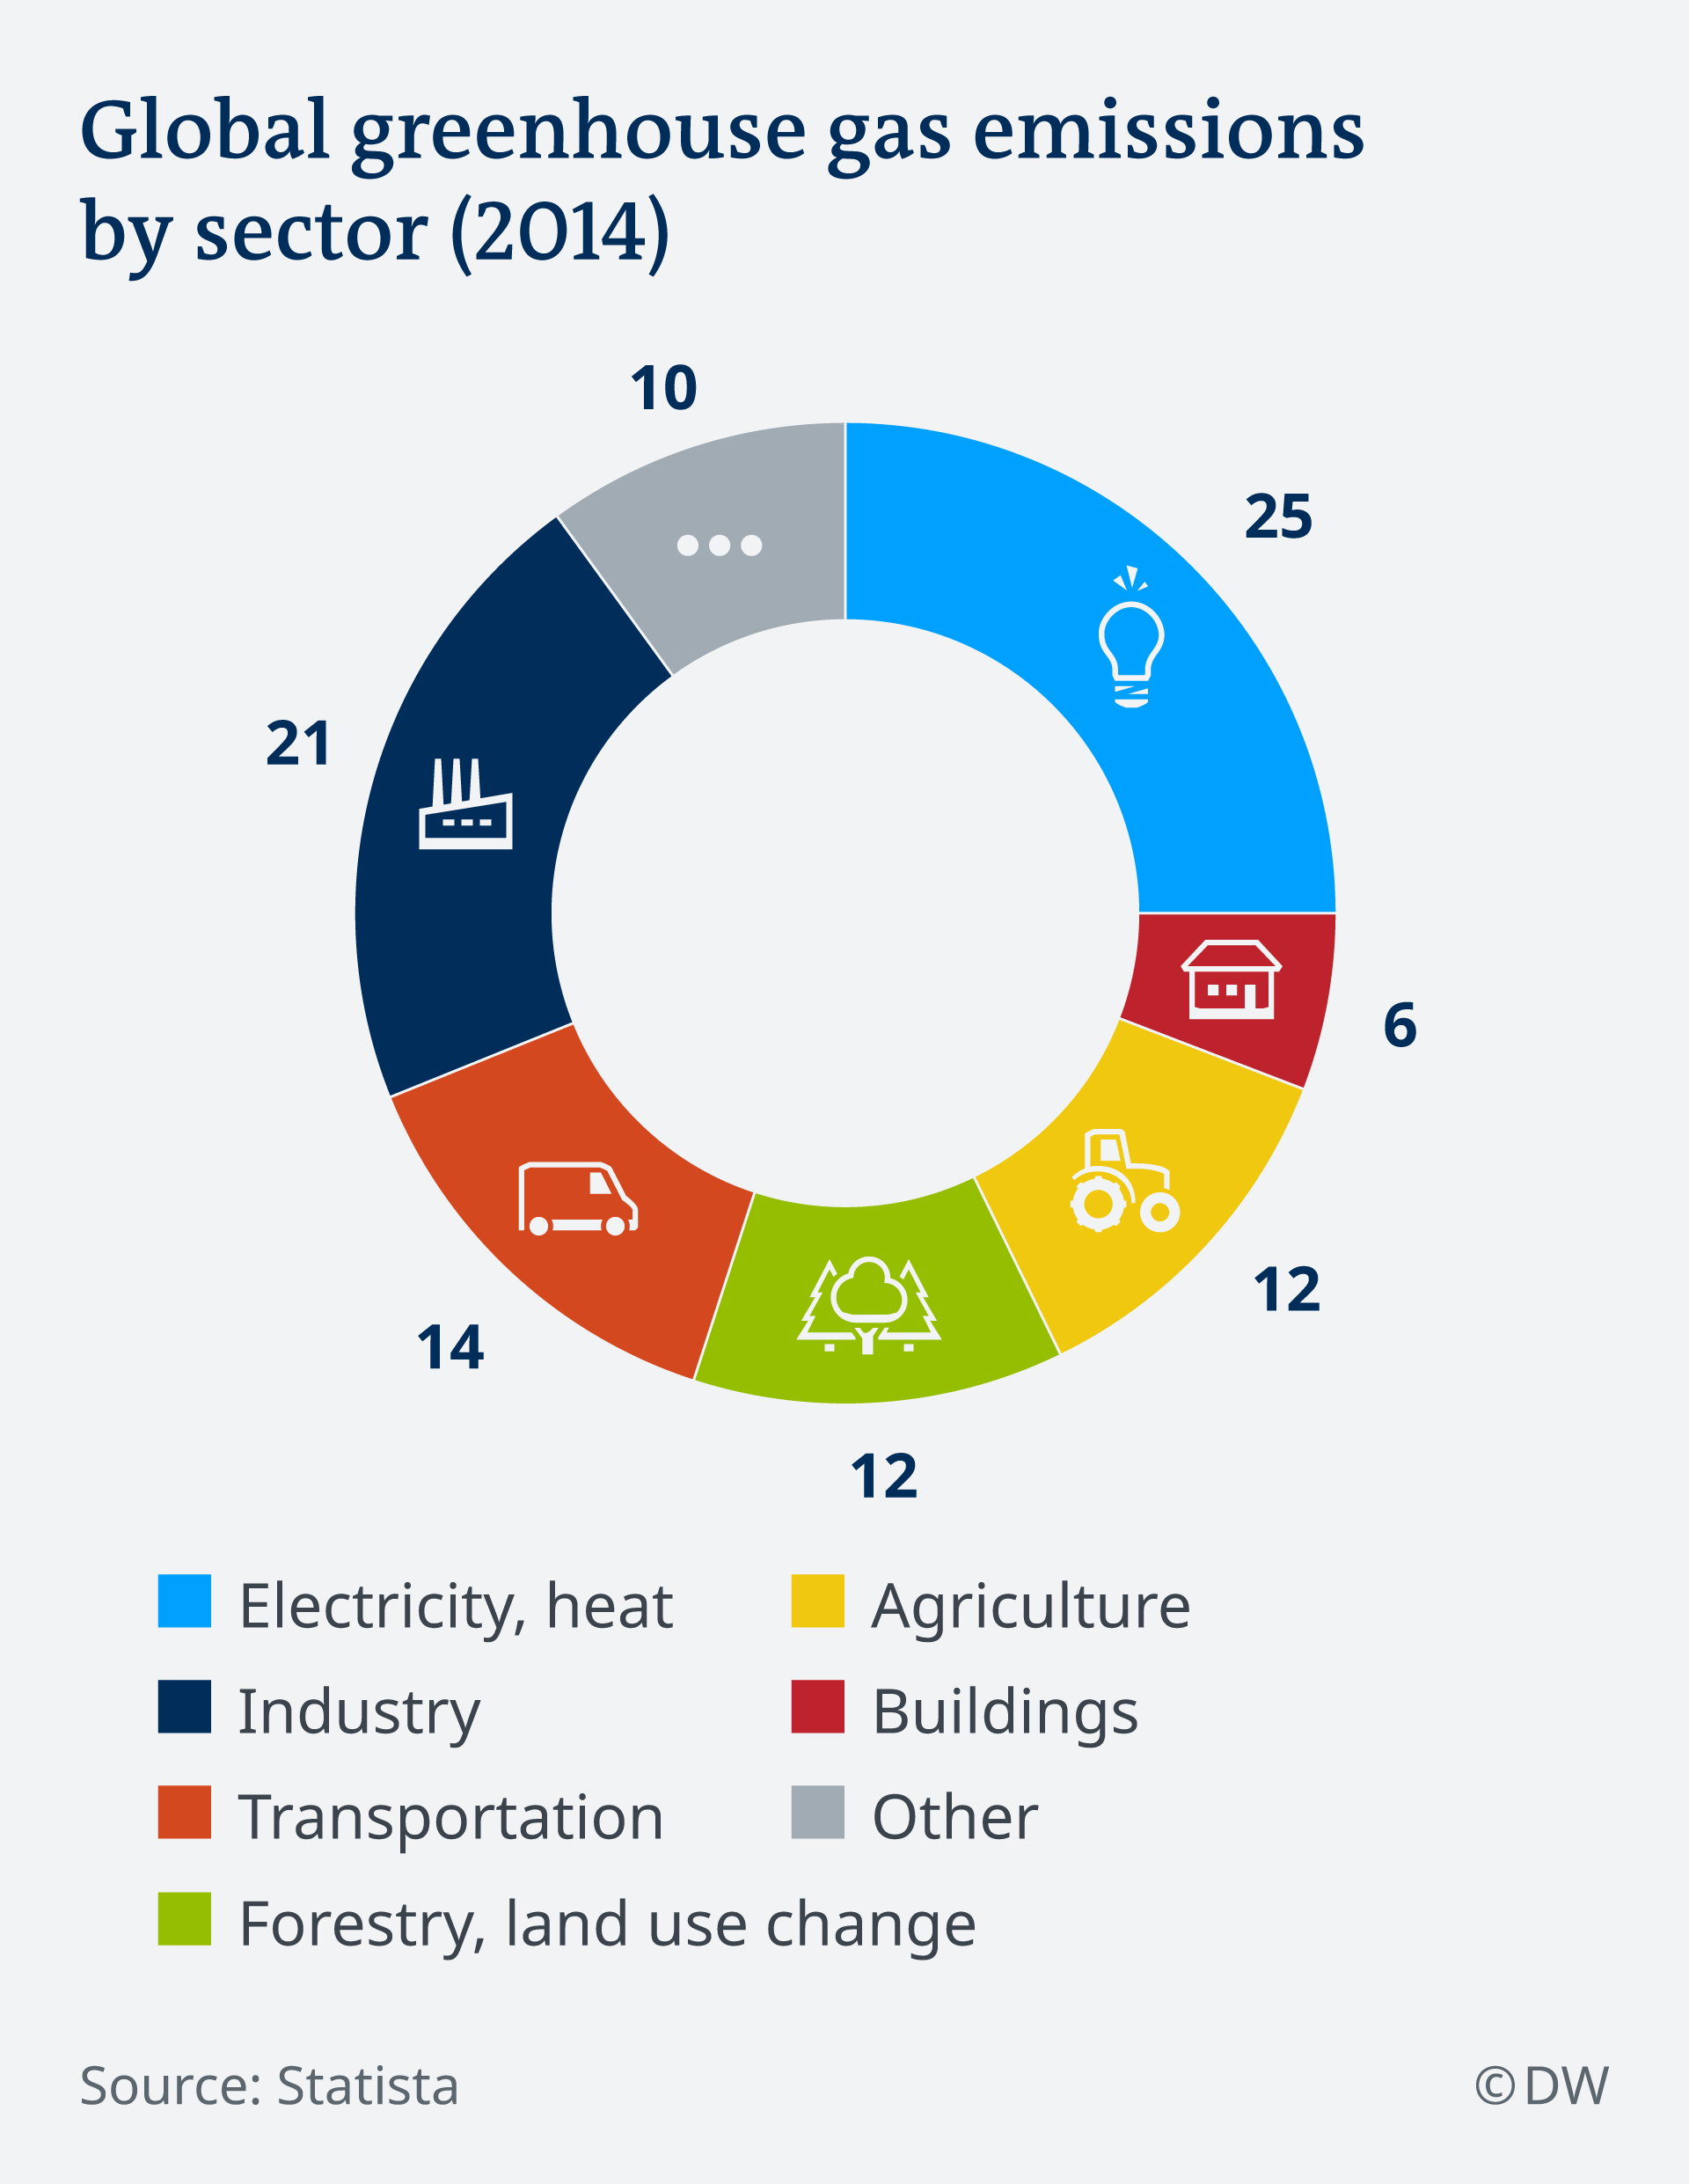 Global greenhouse gas emissions by sector,2014 (DW)